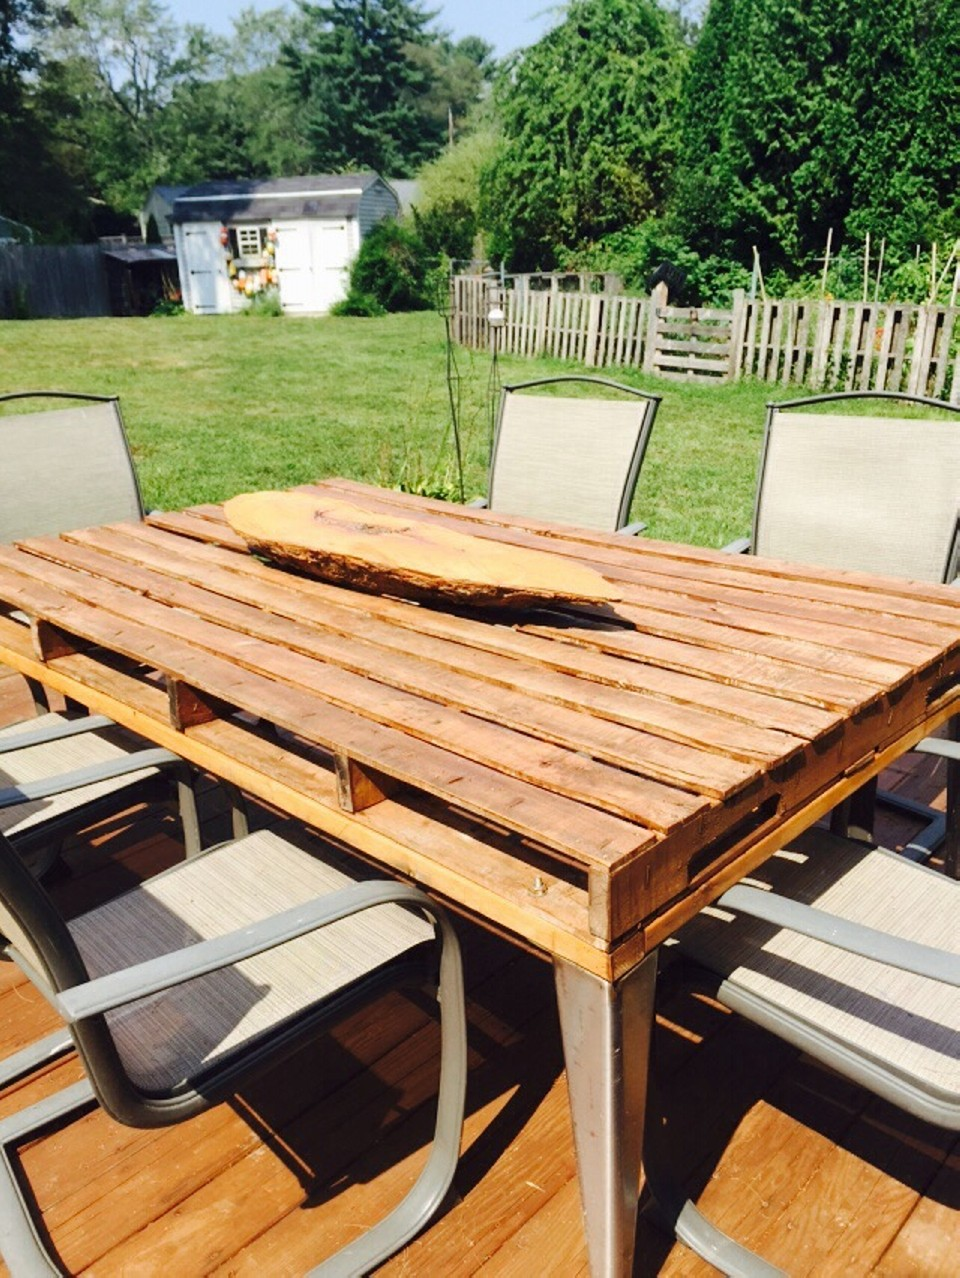 patio coffee table out of wooden pallets pallet ideas